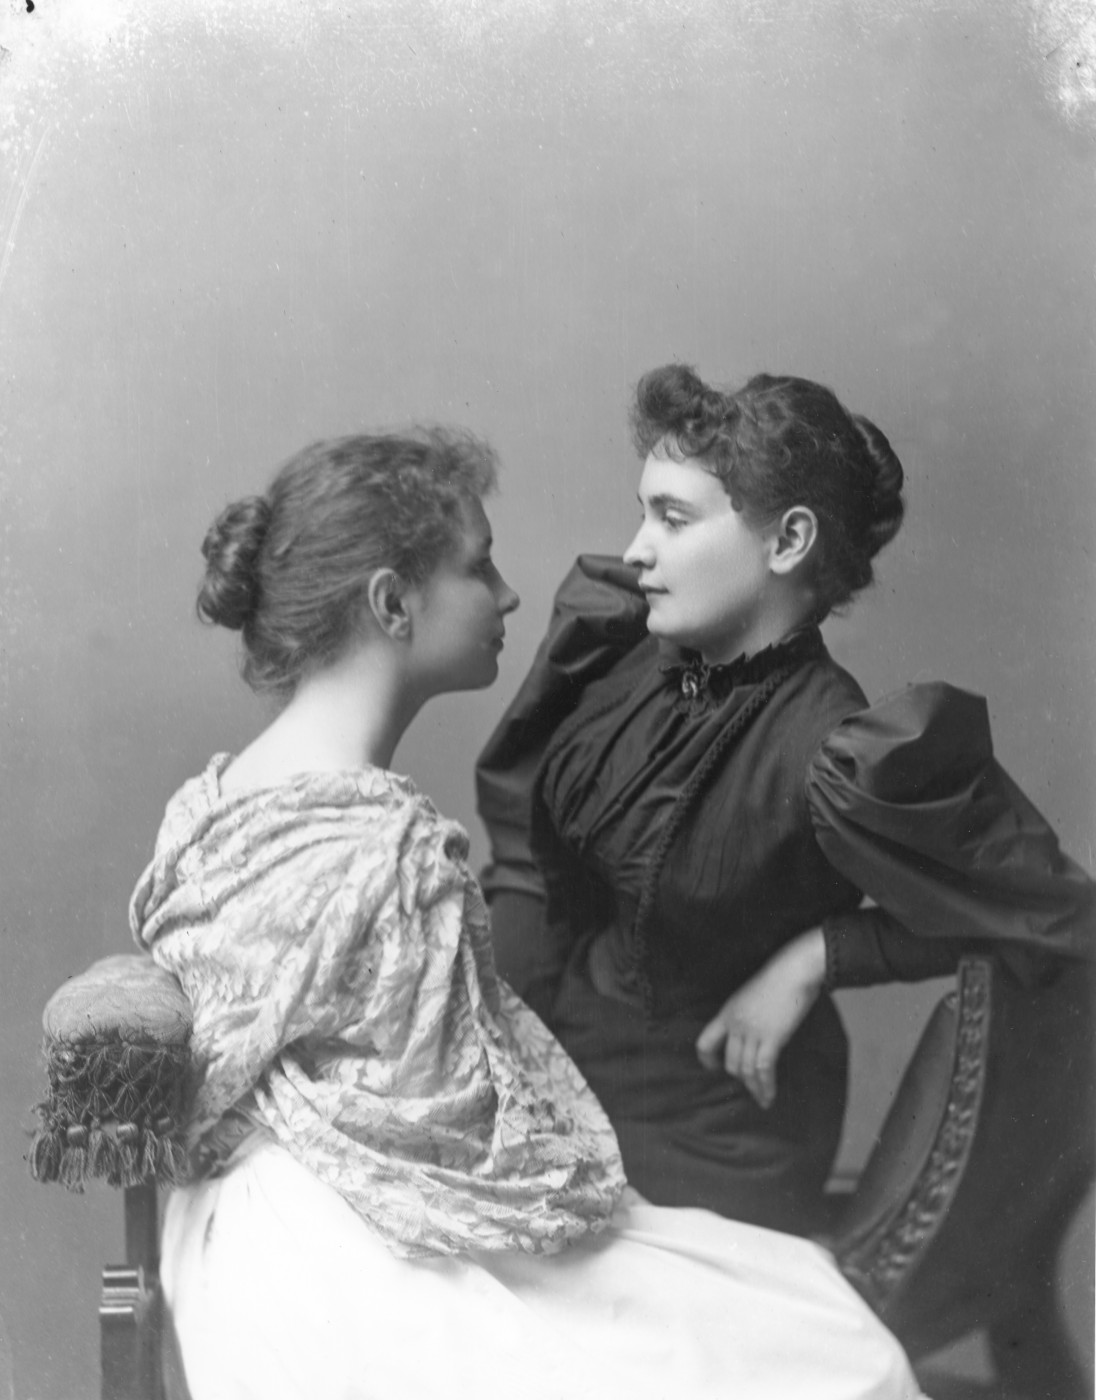 The real helen keller roaring girl productions a monochrome archive photograph shows a teenage helen sitting on a chaise facing a young annie thecheapjerseys Image collections